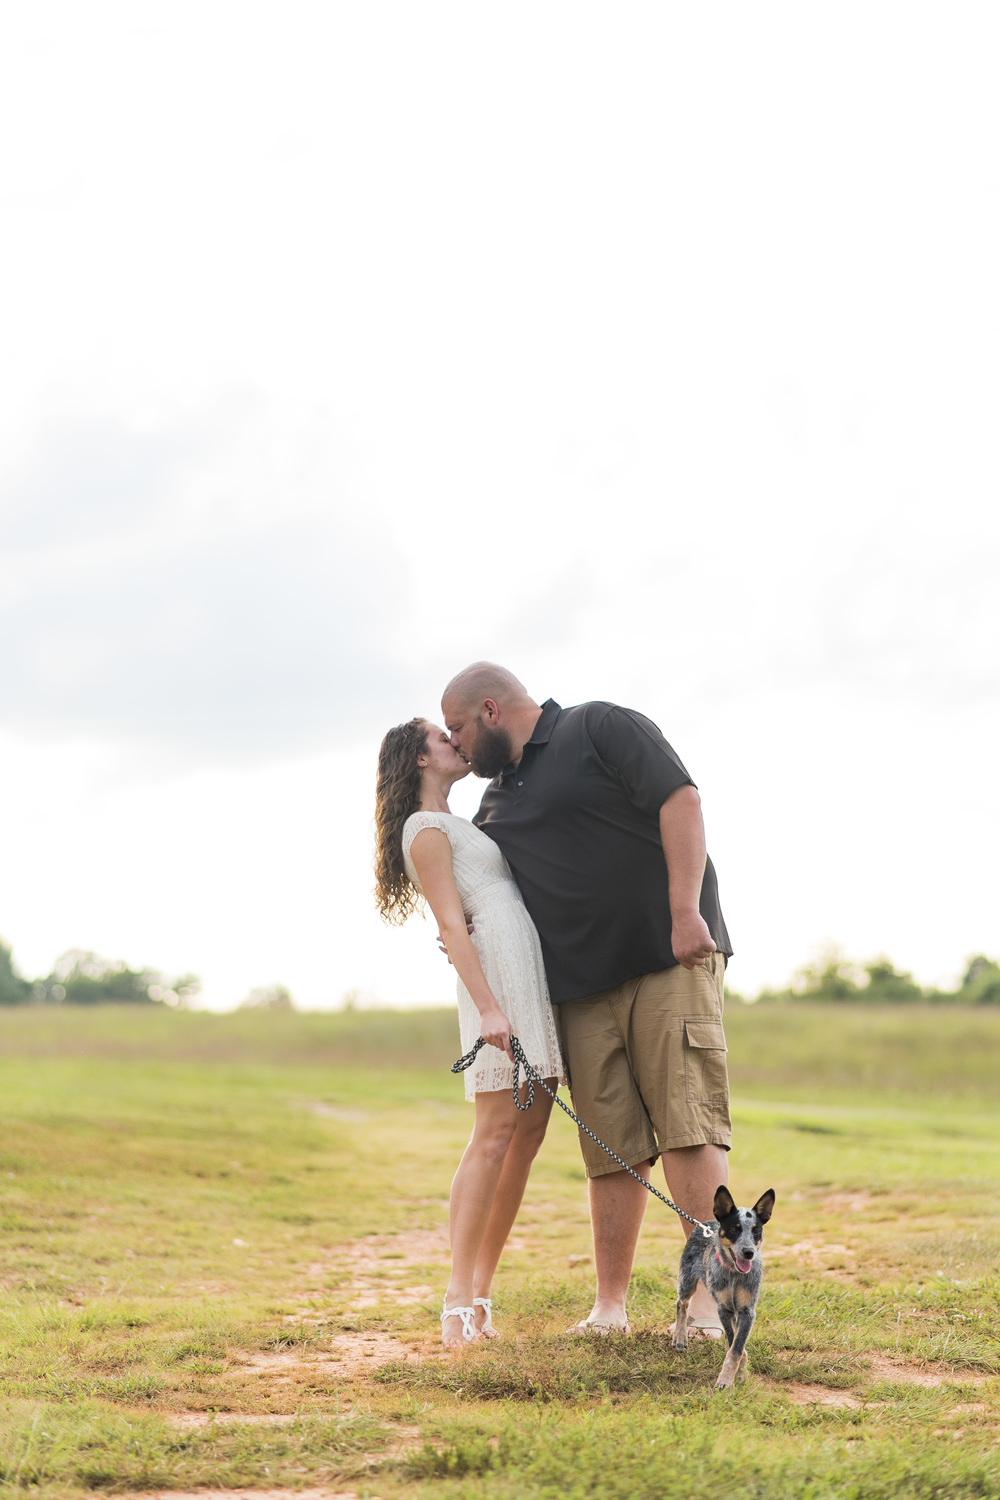 Engagement_session_farm_ranch_country_dance_ballet_lift_altavista_Lynchburg_VA_Photos20150821_0496.jpg